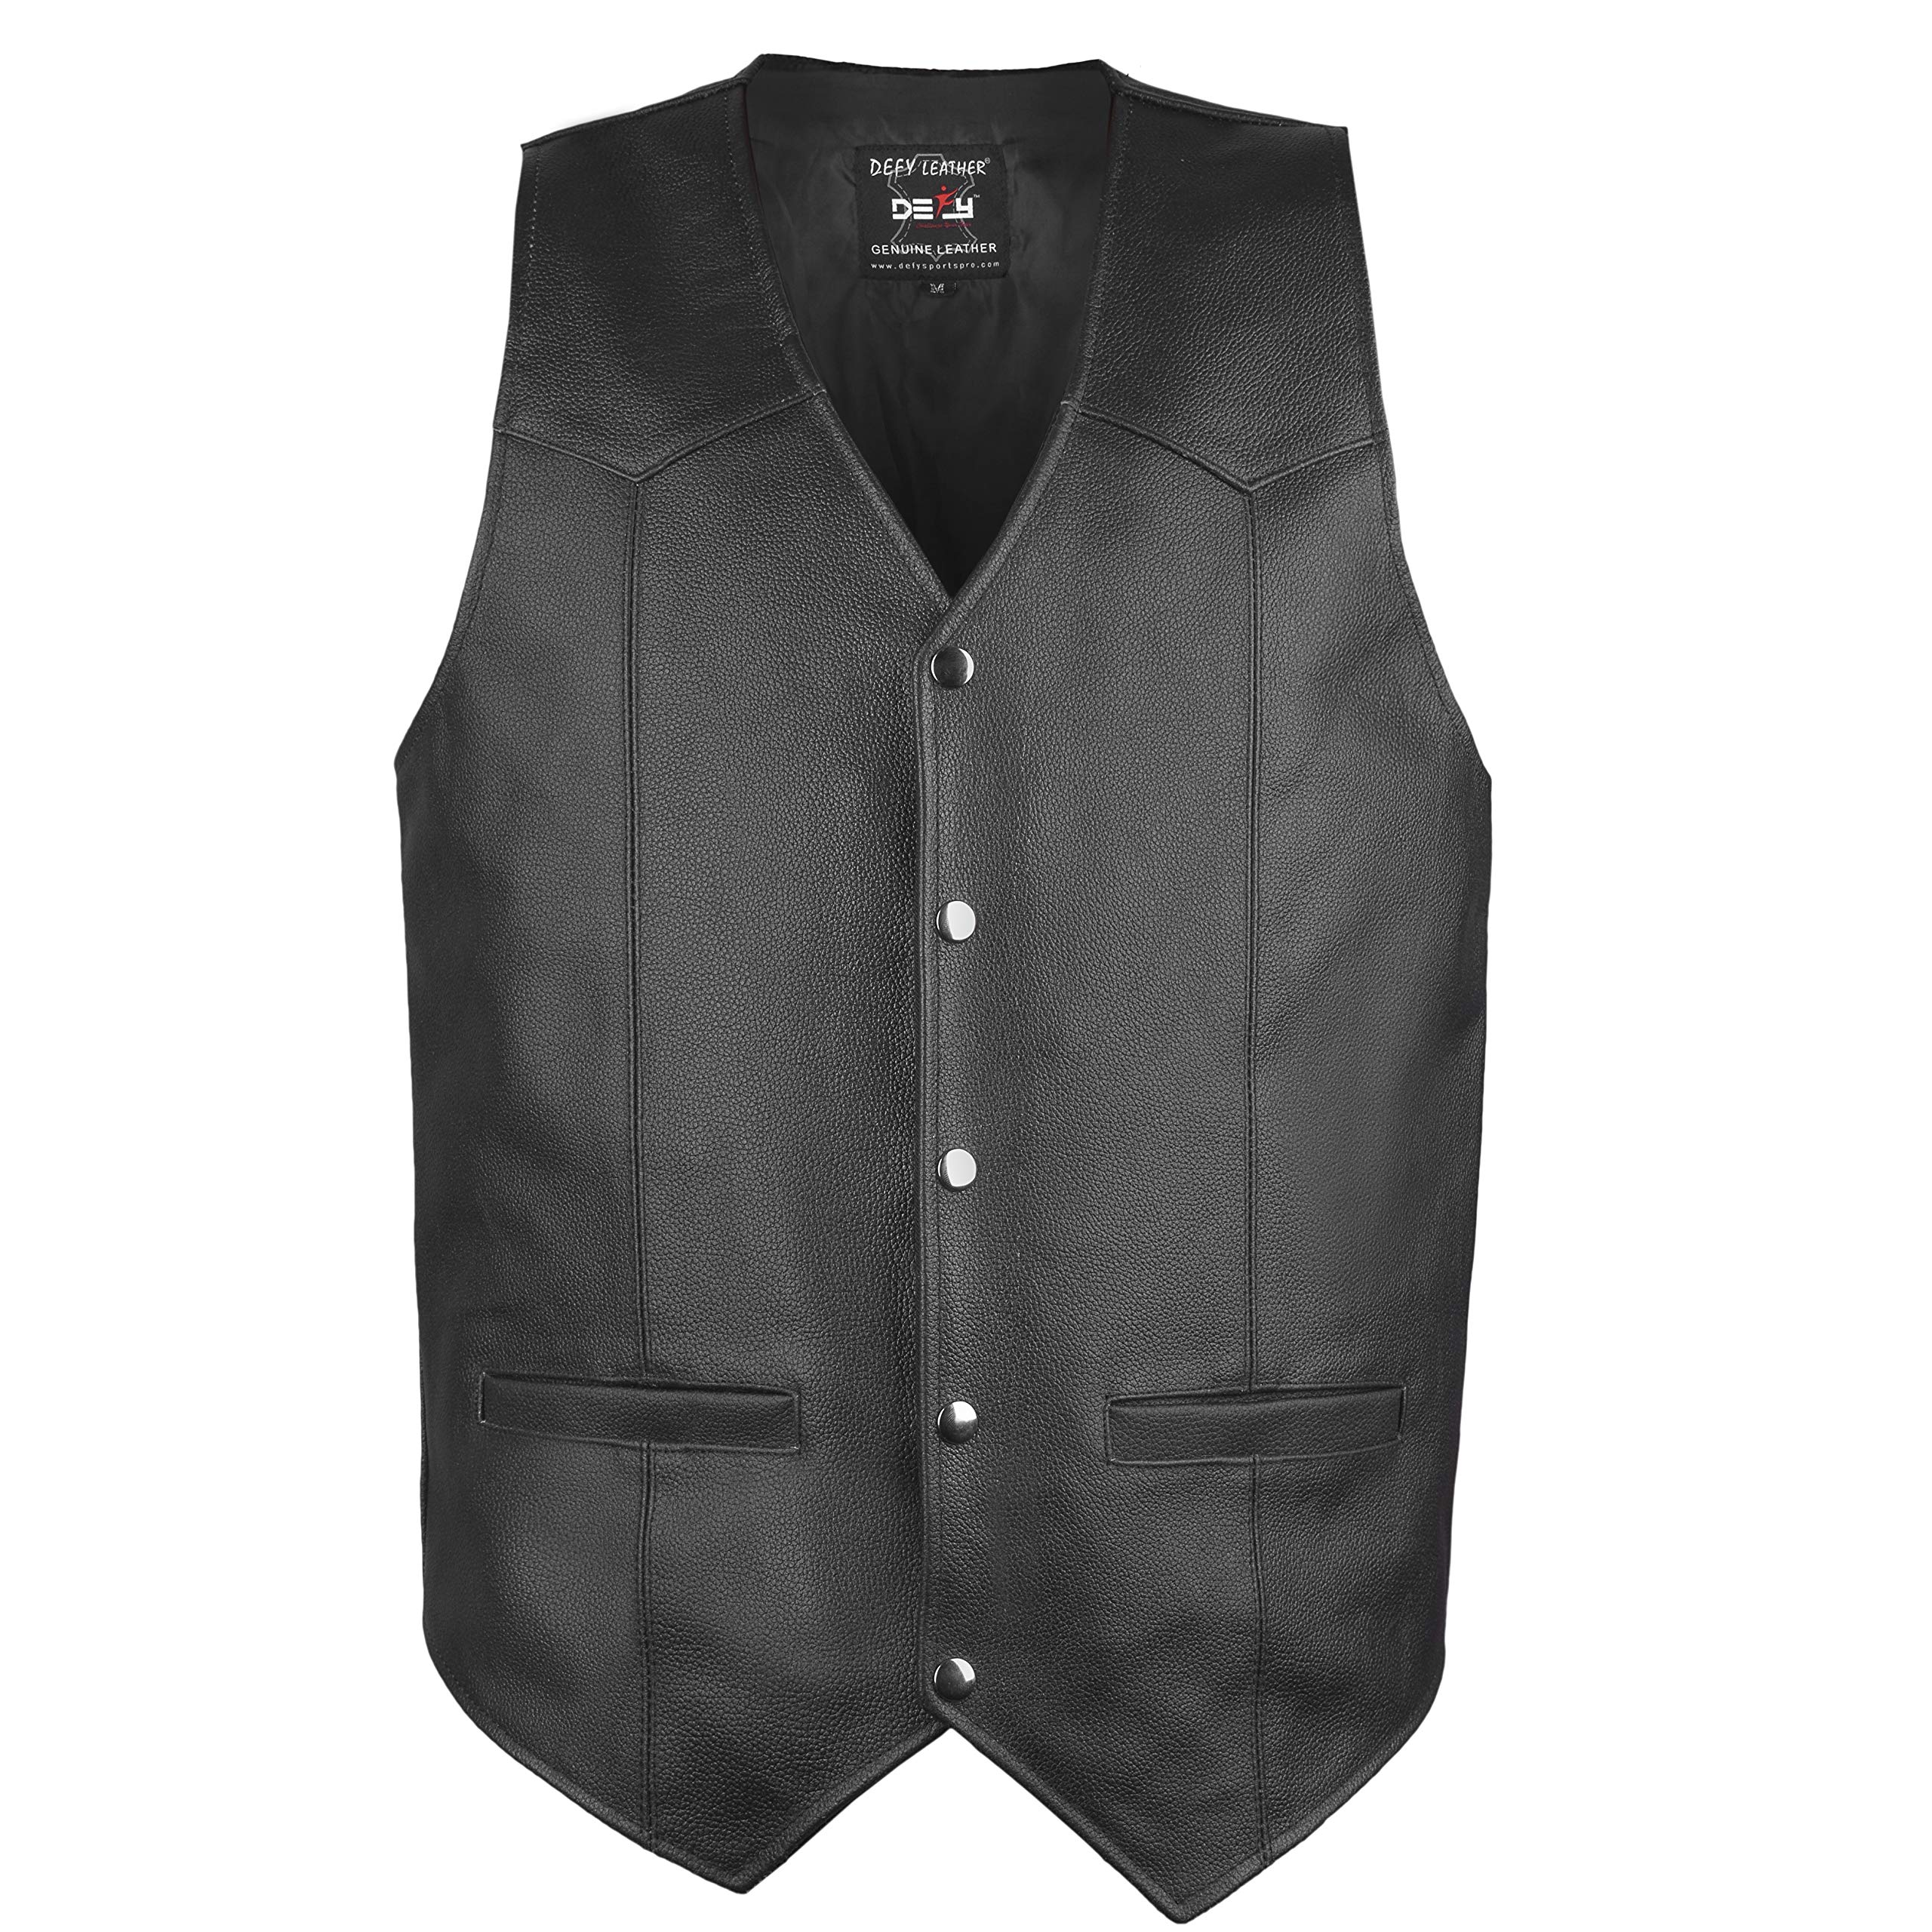 DEFY Men's Motorbike Vest Club Style Classic Genuine Leather Vest with Gun Pockets Full Solid Back (Medium) by DEFY Sports